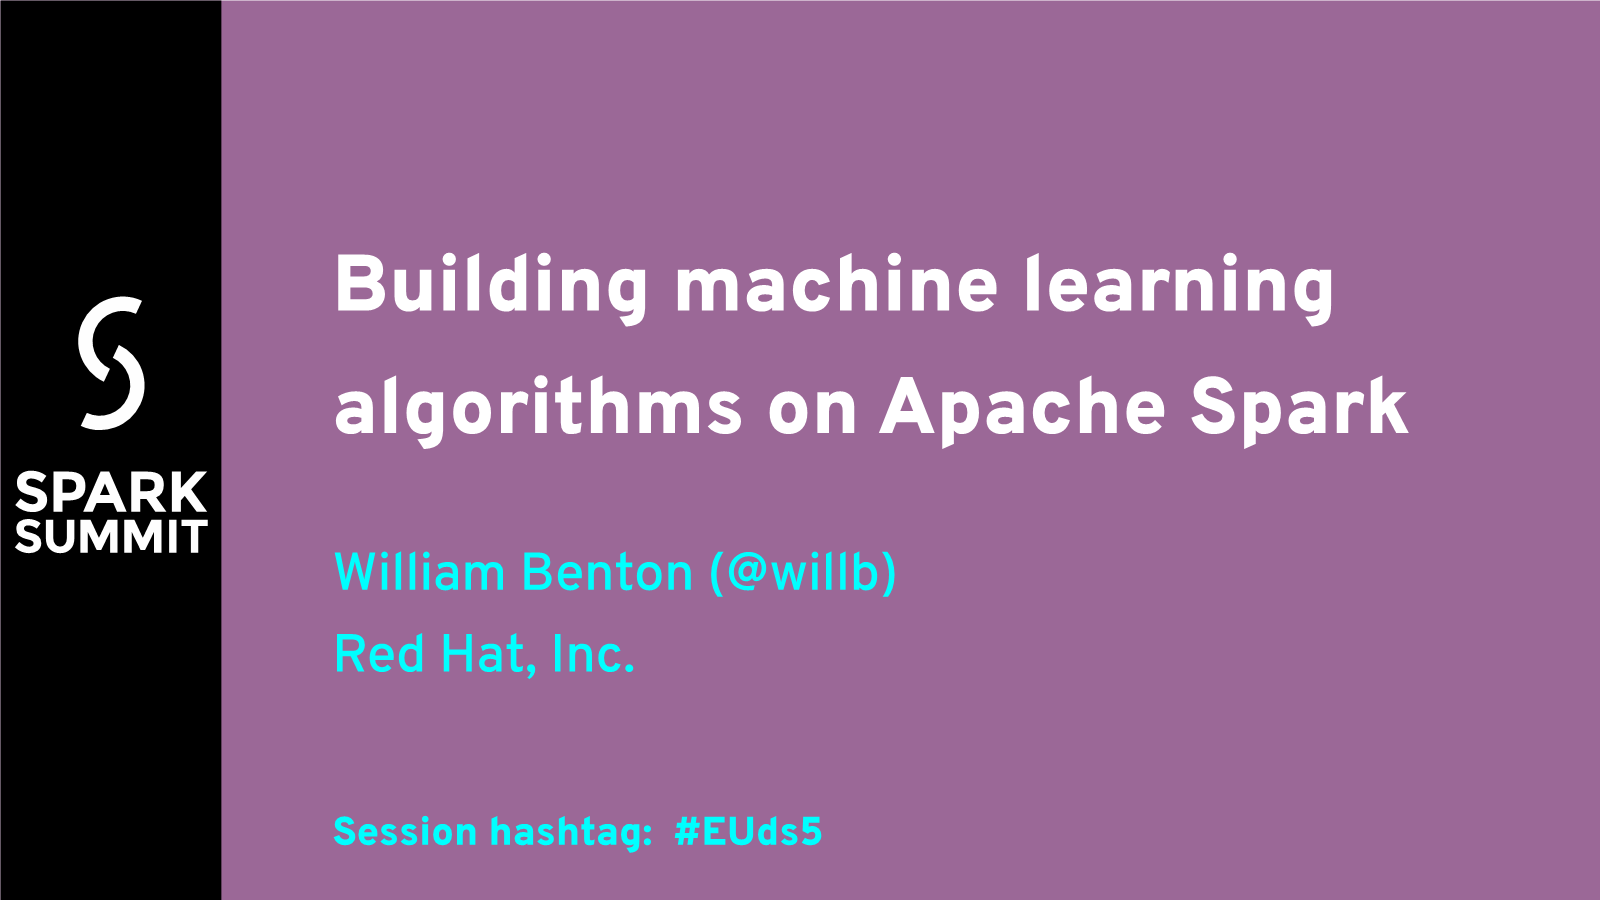 William-Building machine learning algorithms on Apache Spark